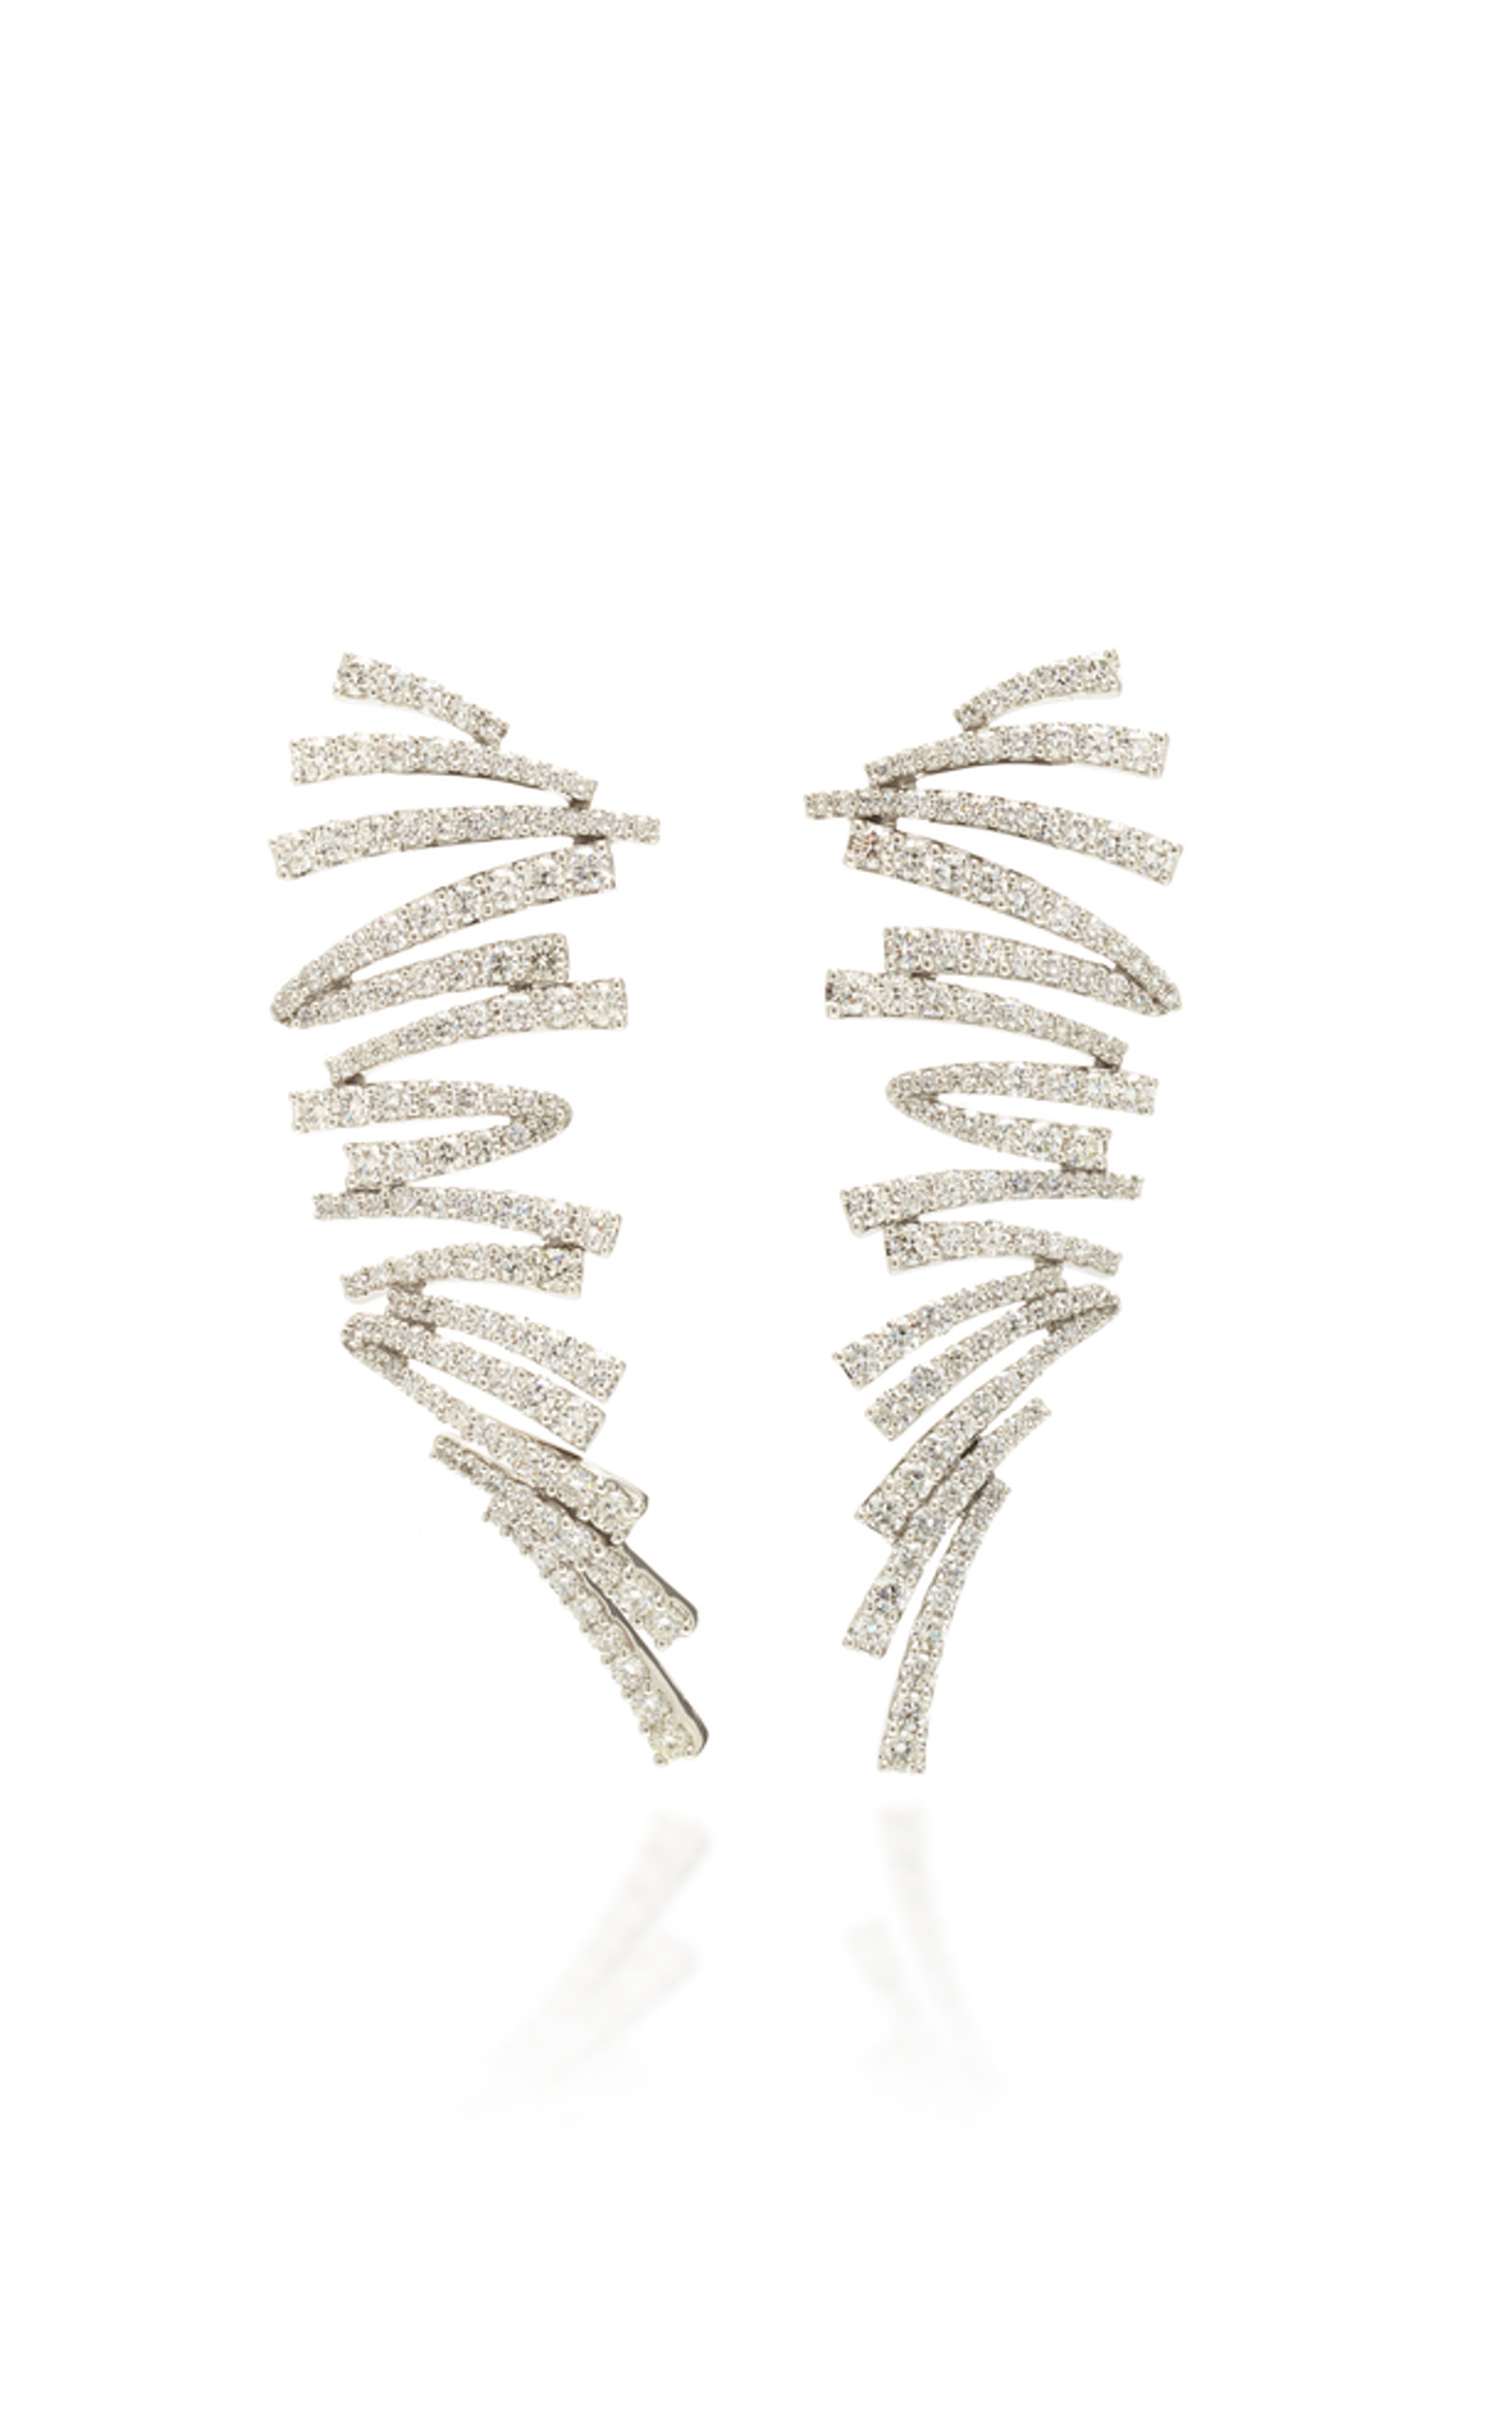 LABYRINTH WHITE GOLD AND DIAMOND EARRINGS